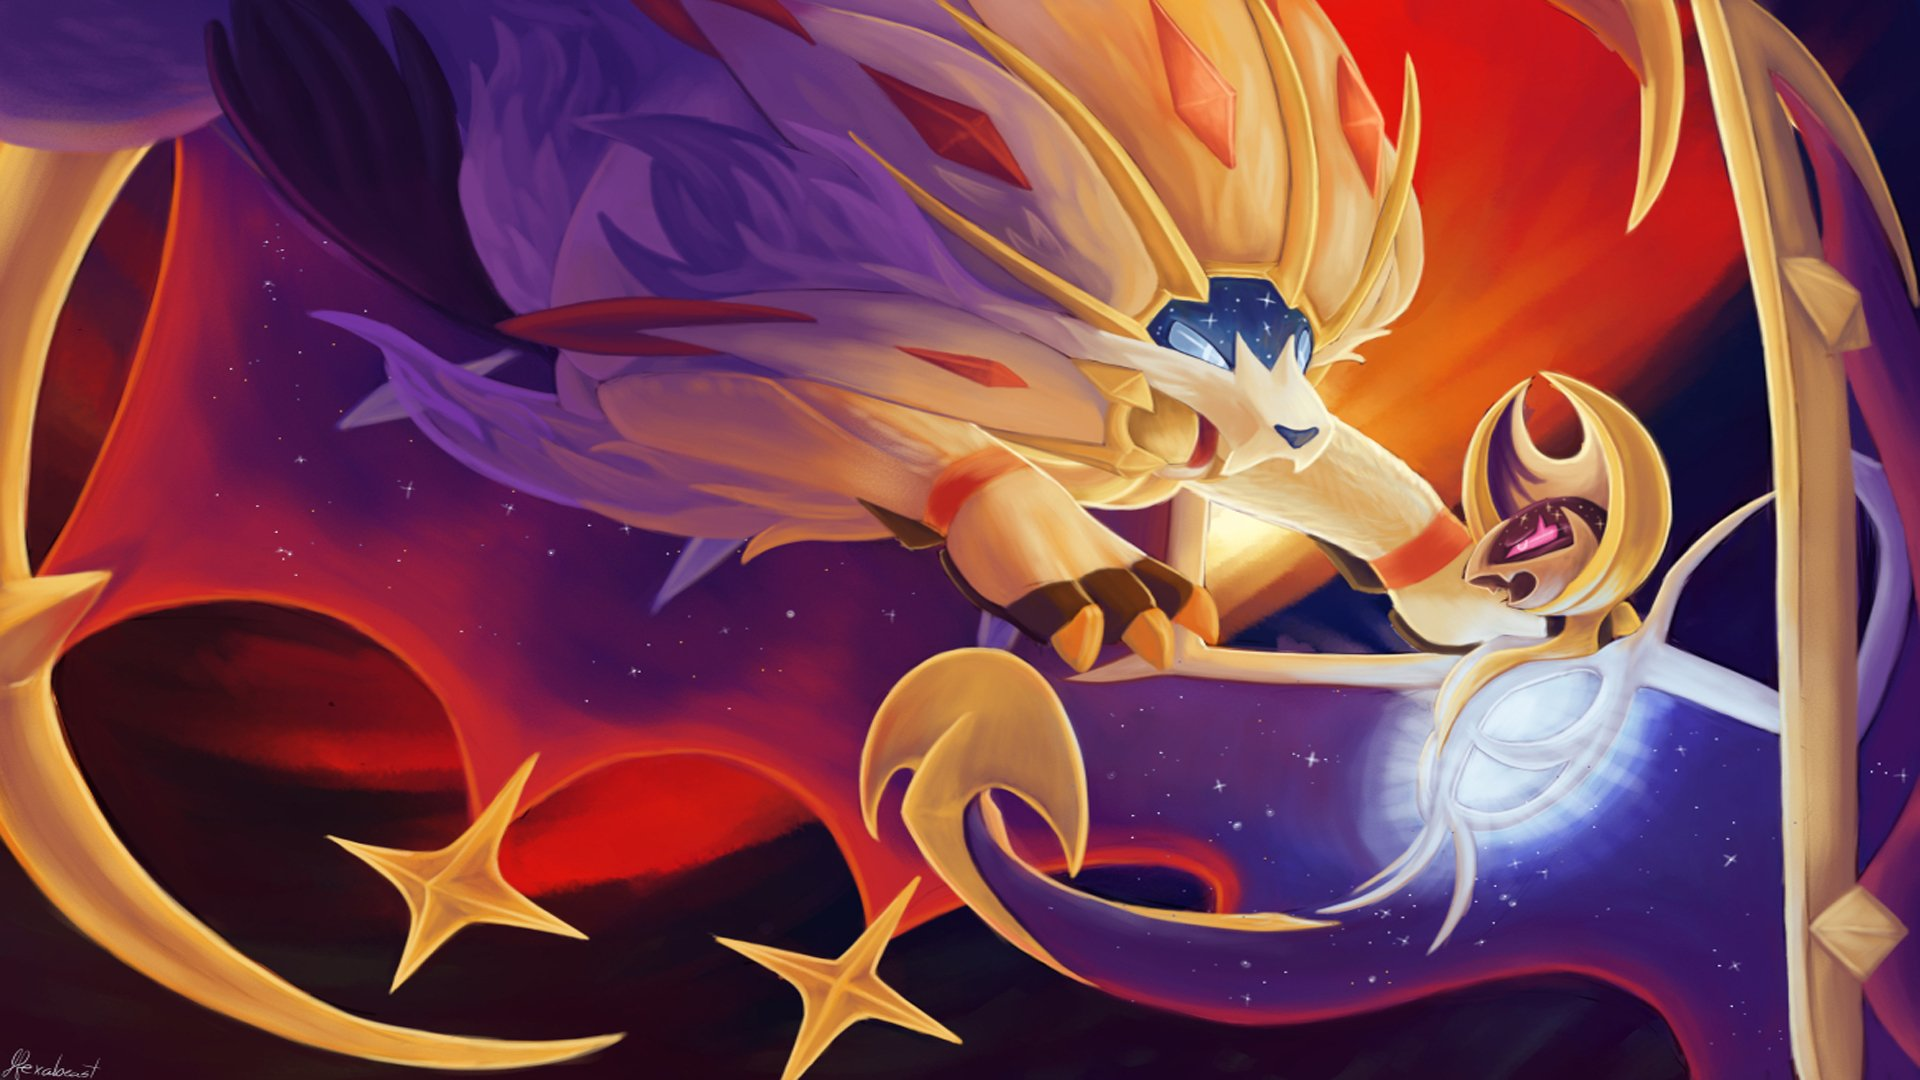 Pokemon Sun And Moon Wallpaper: Solgaleo And Lunala Computer Wallpapers, Desktop